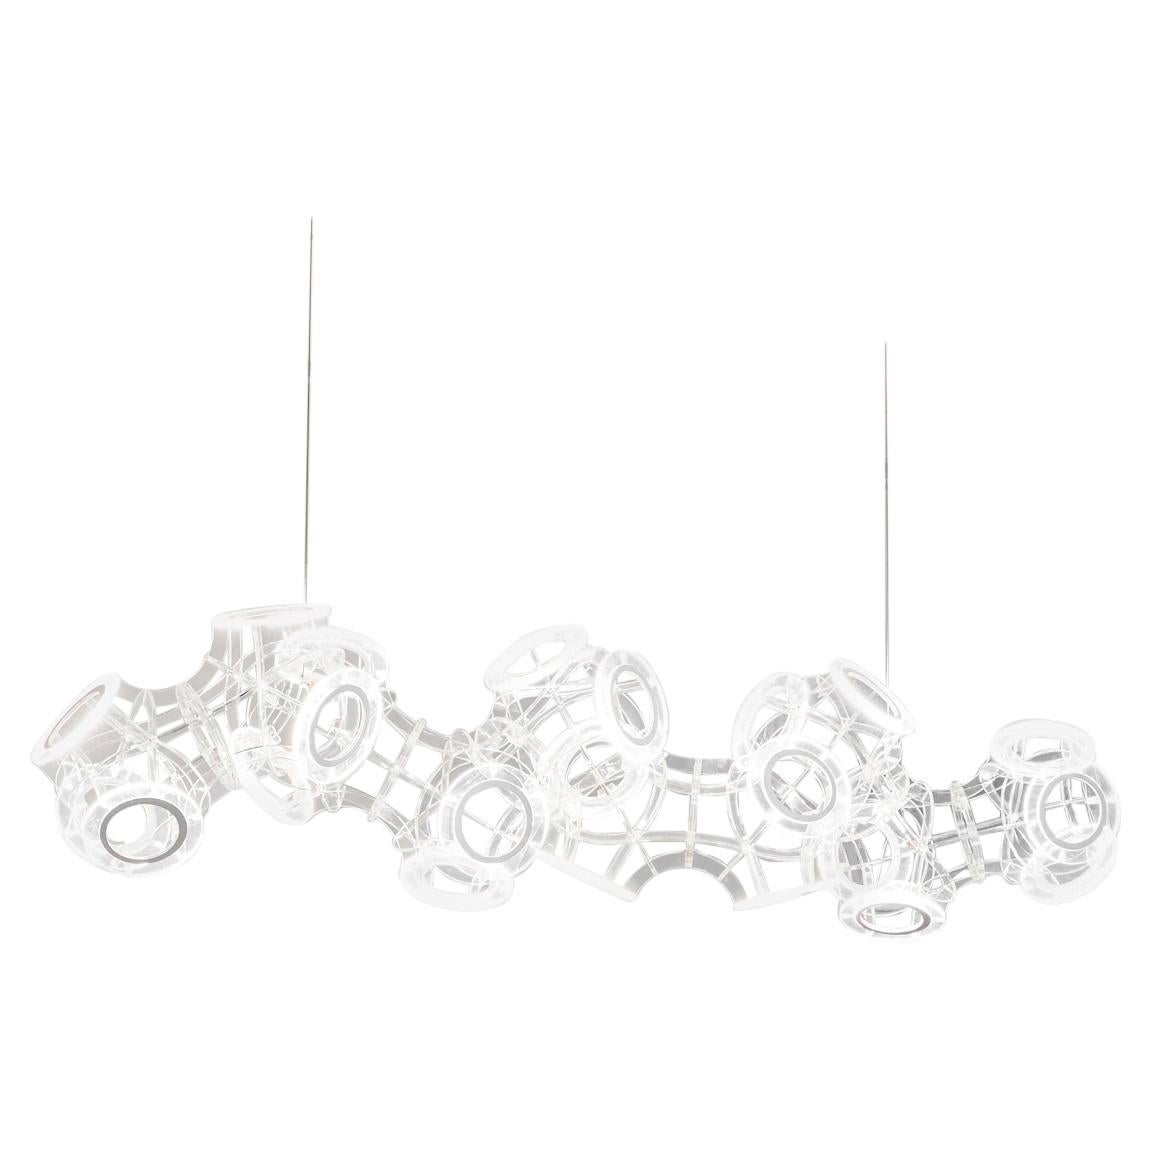 Lucite Helix Chandelier by Cam Crockford